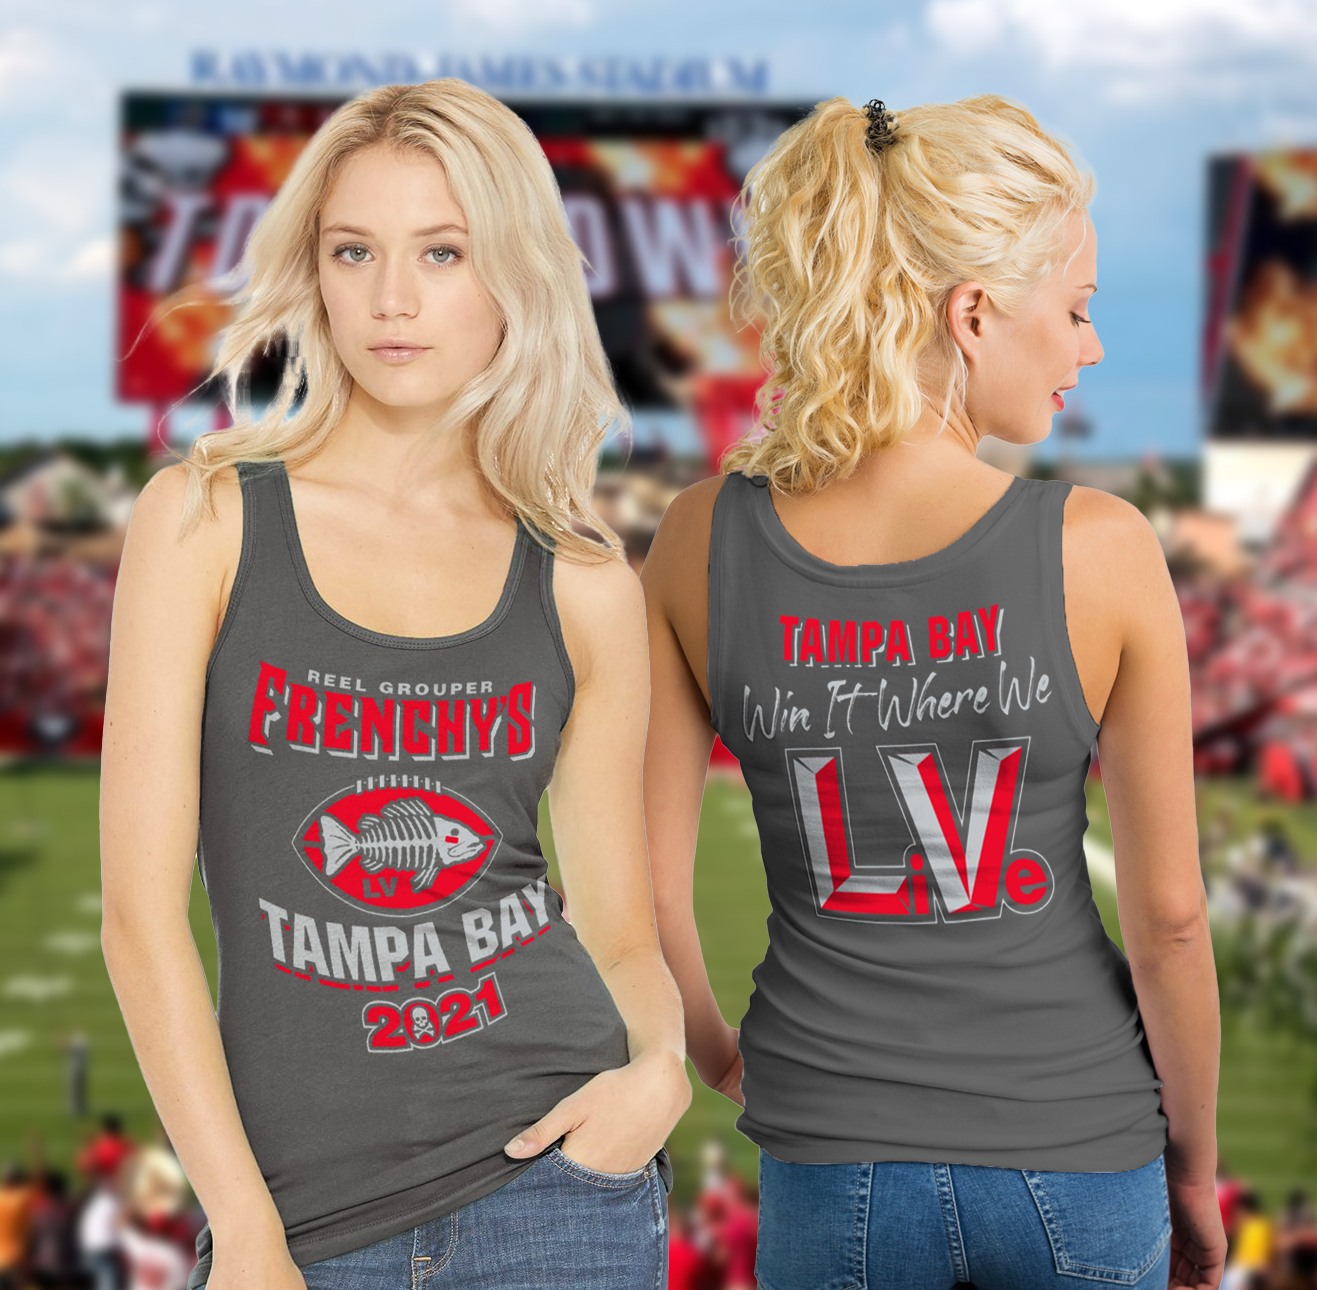 Frenchy's Football Tank Top - Models showing FRONT and Back